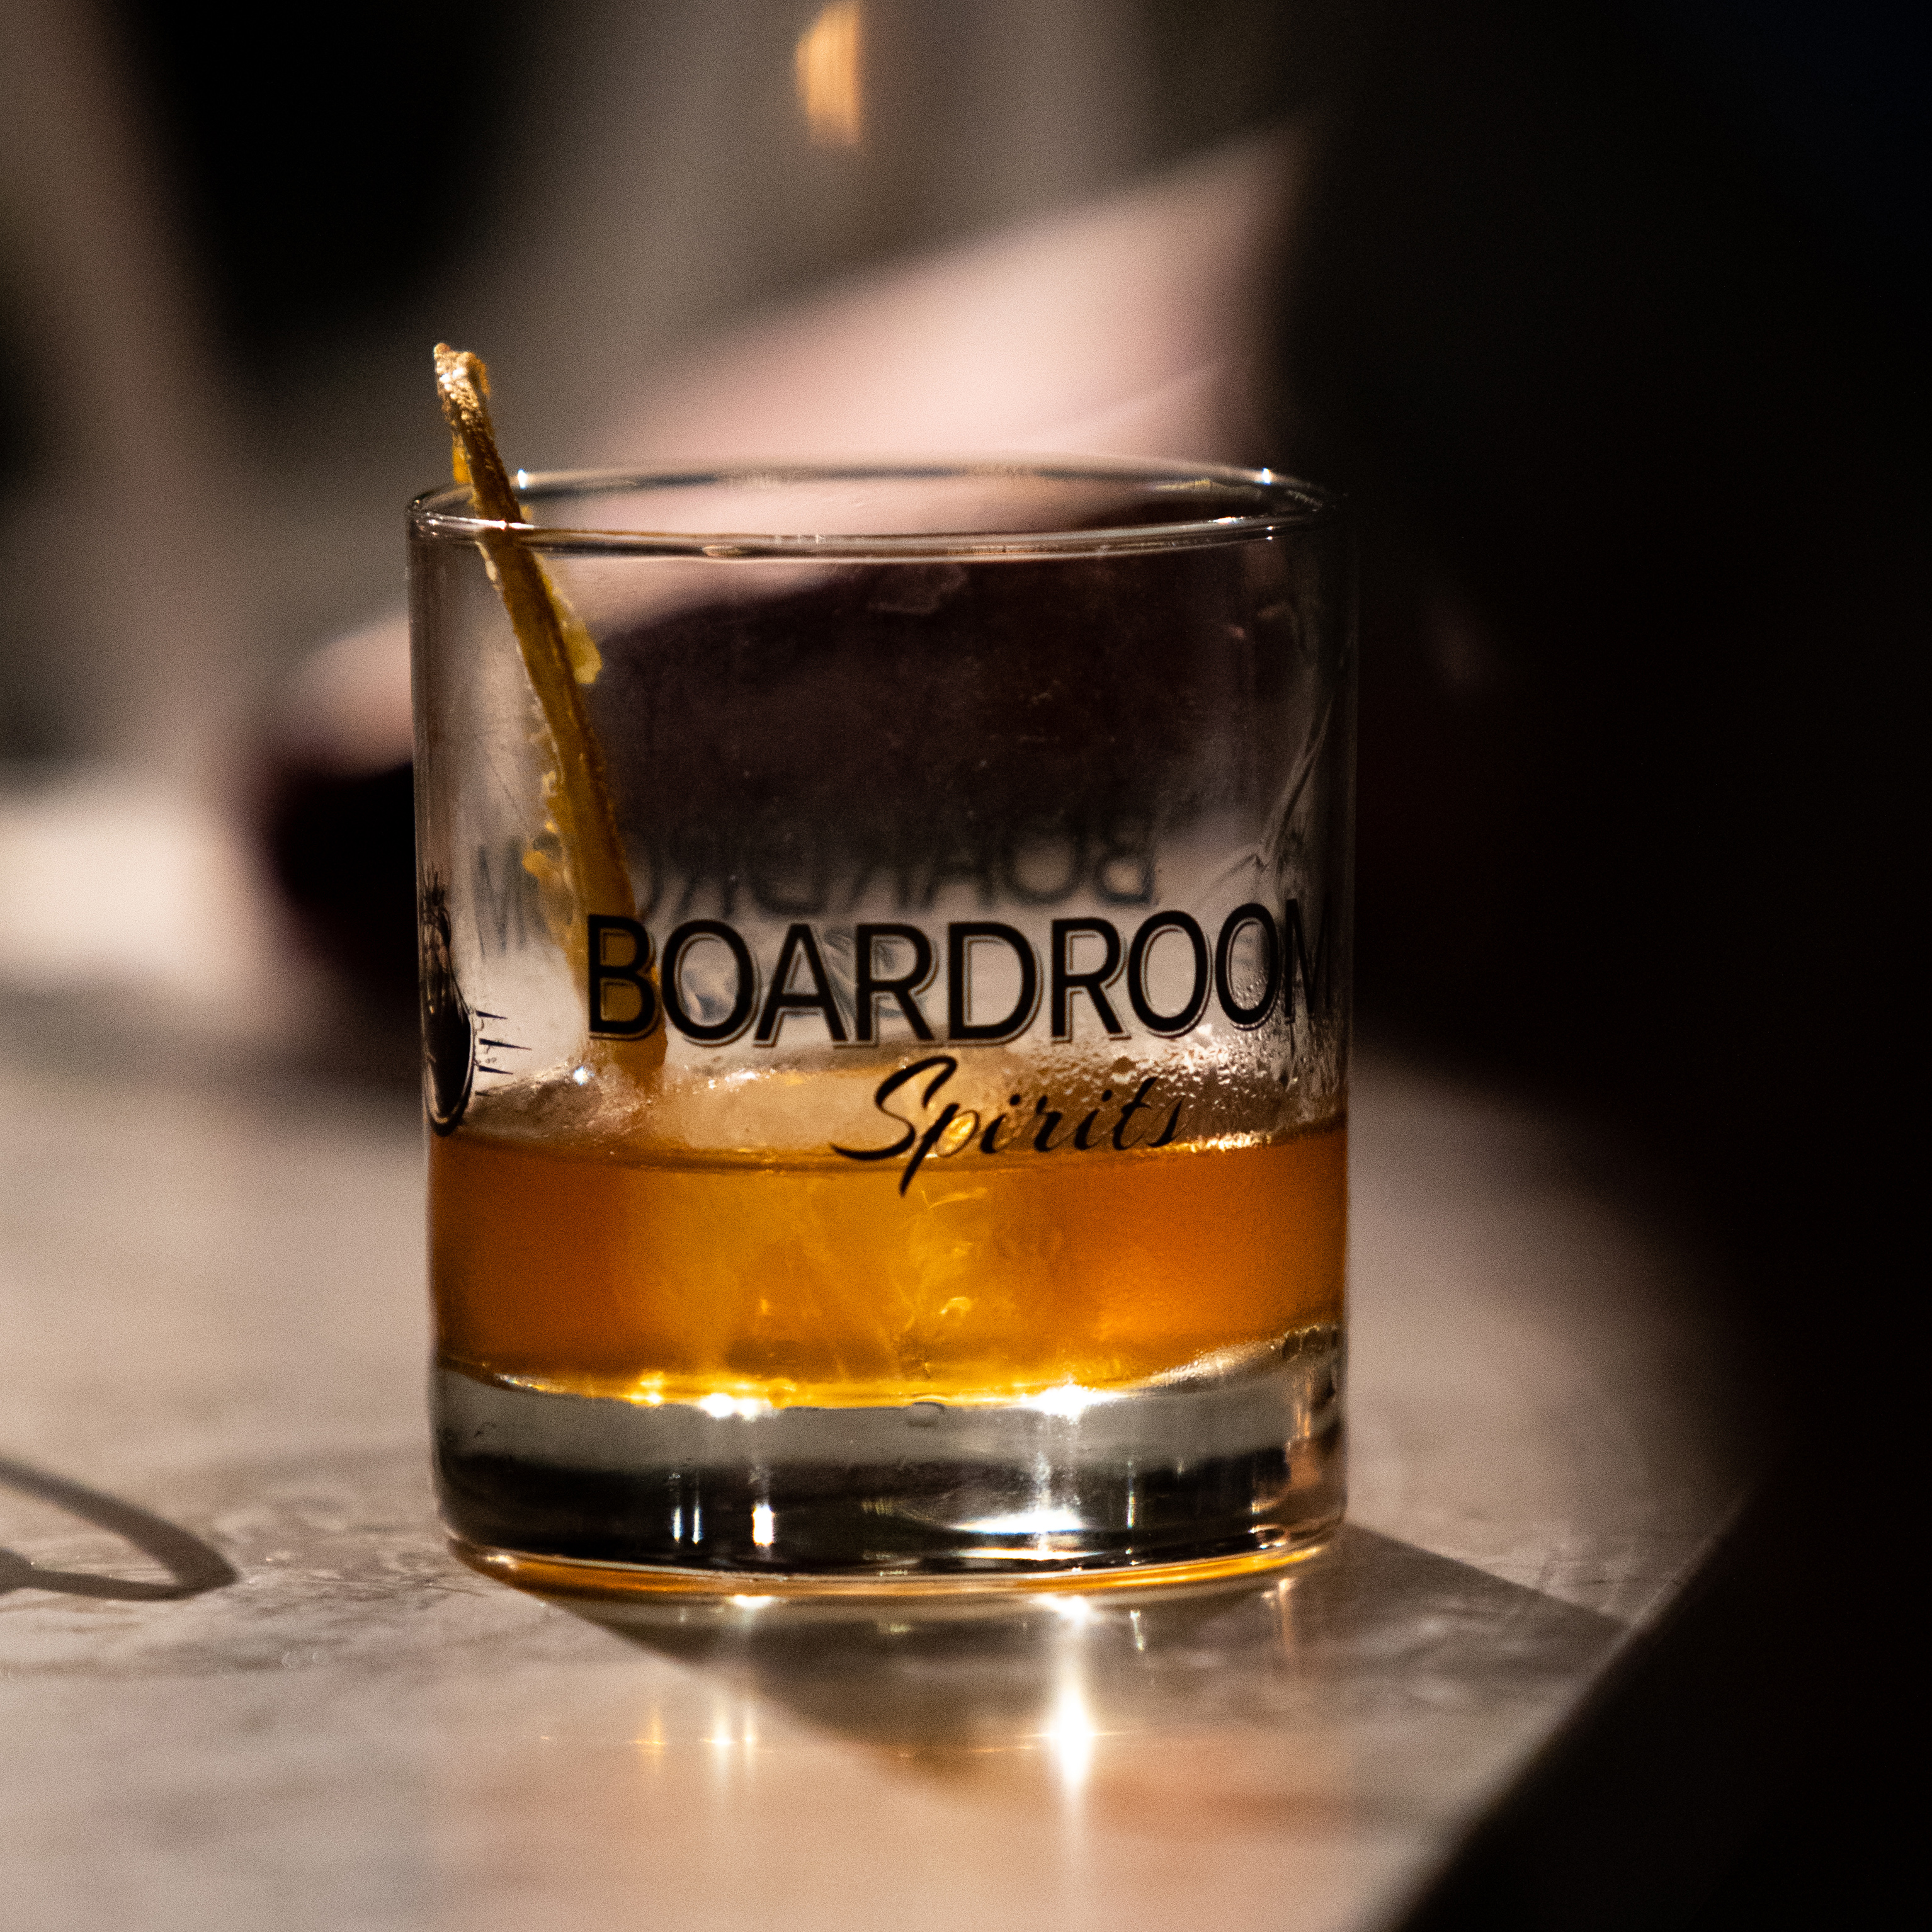 Boardroom Spirits Smoked Old Fashioned